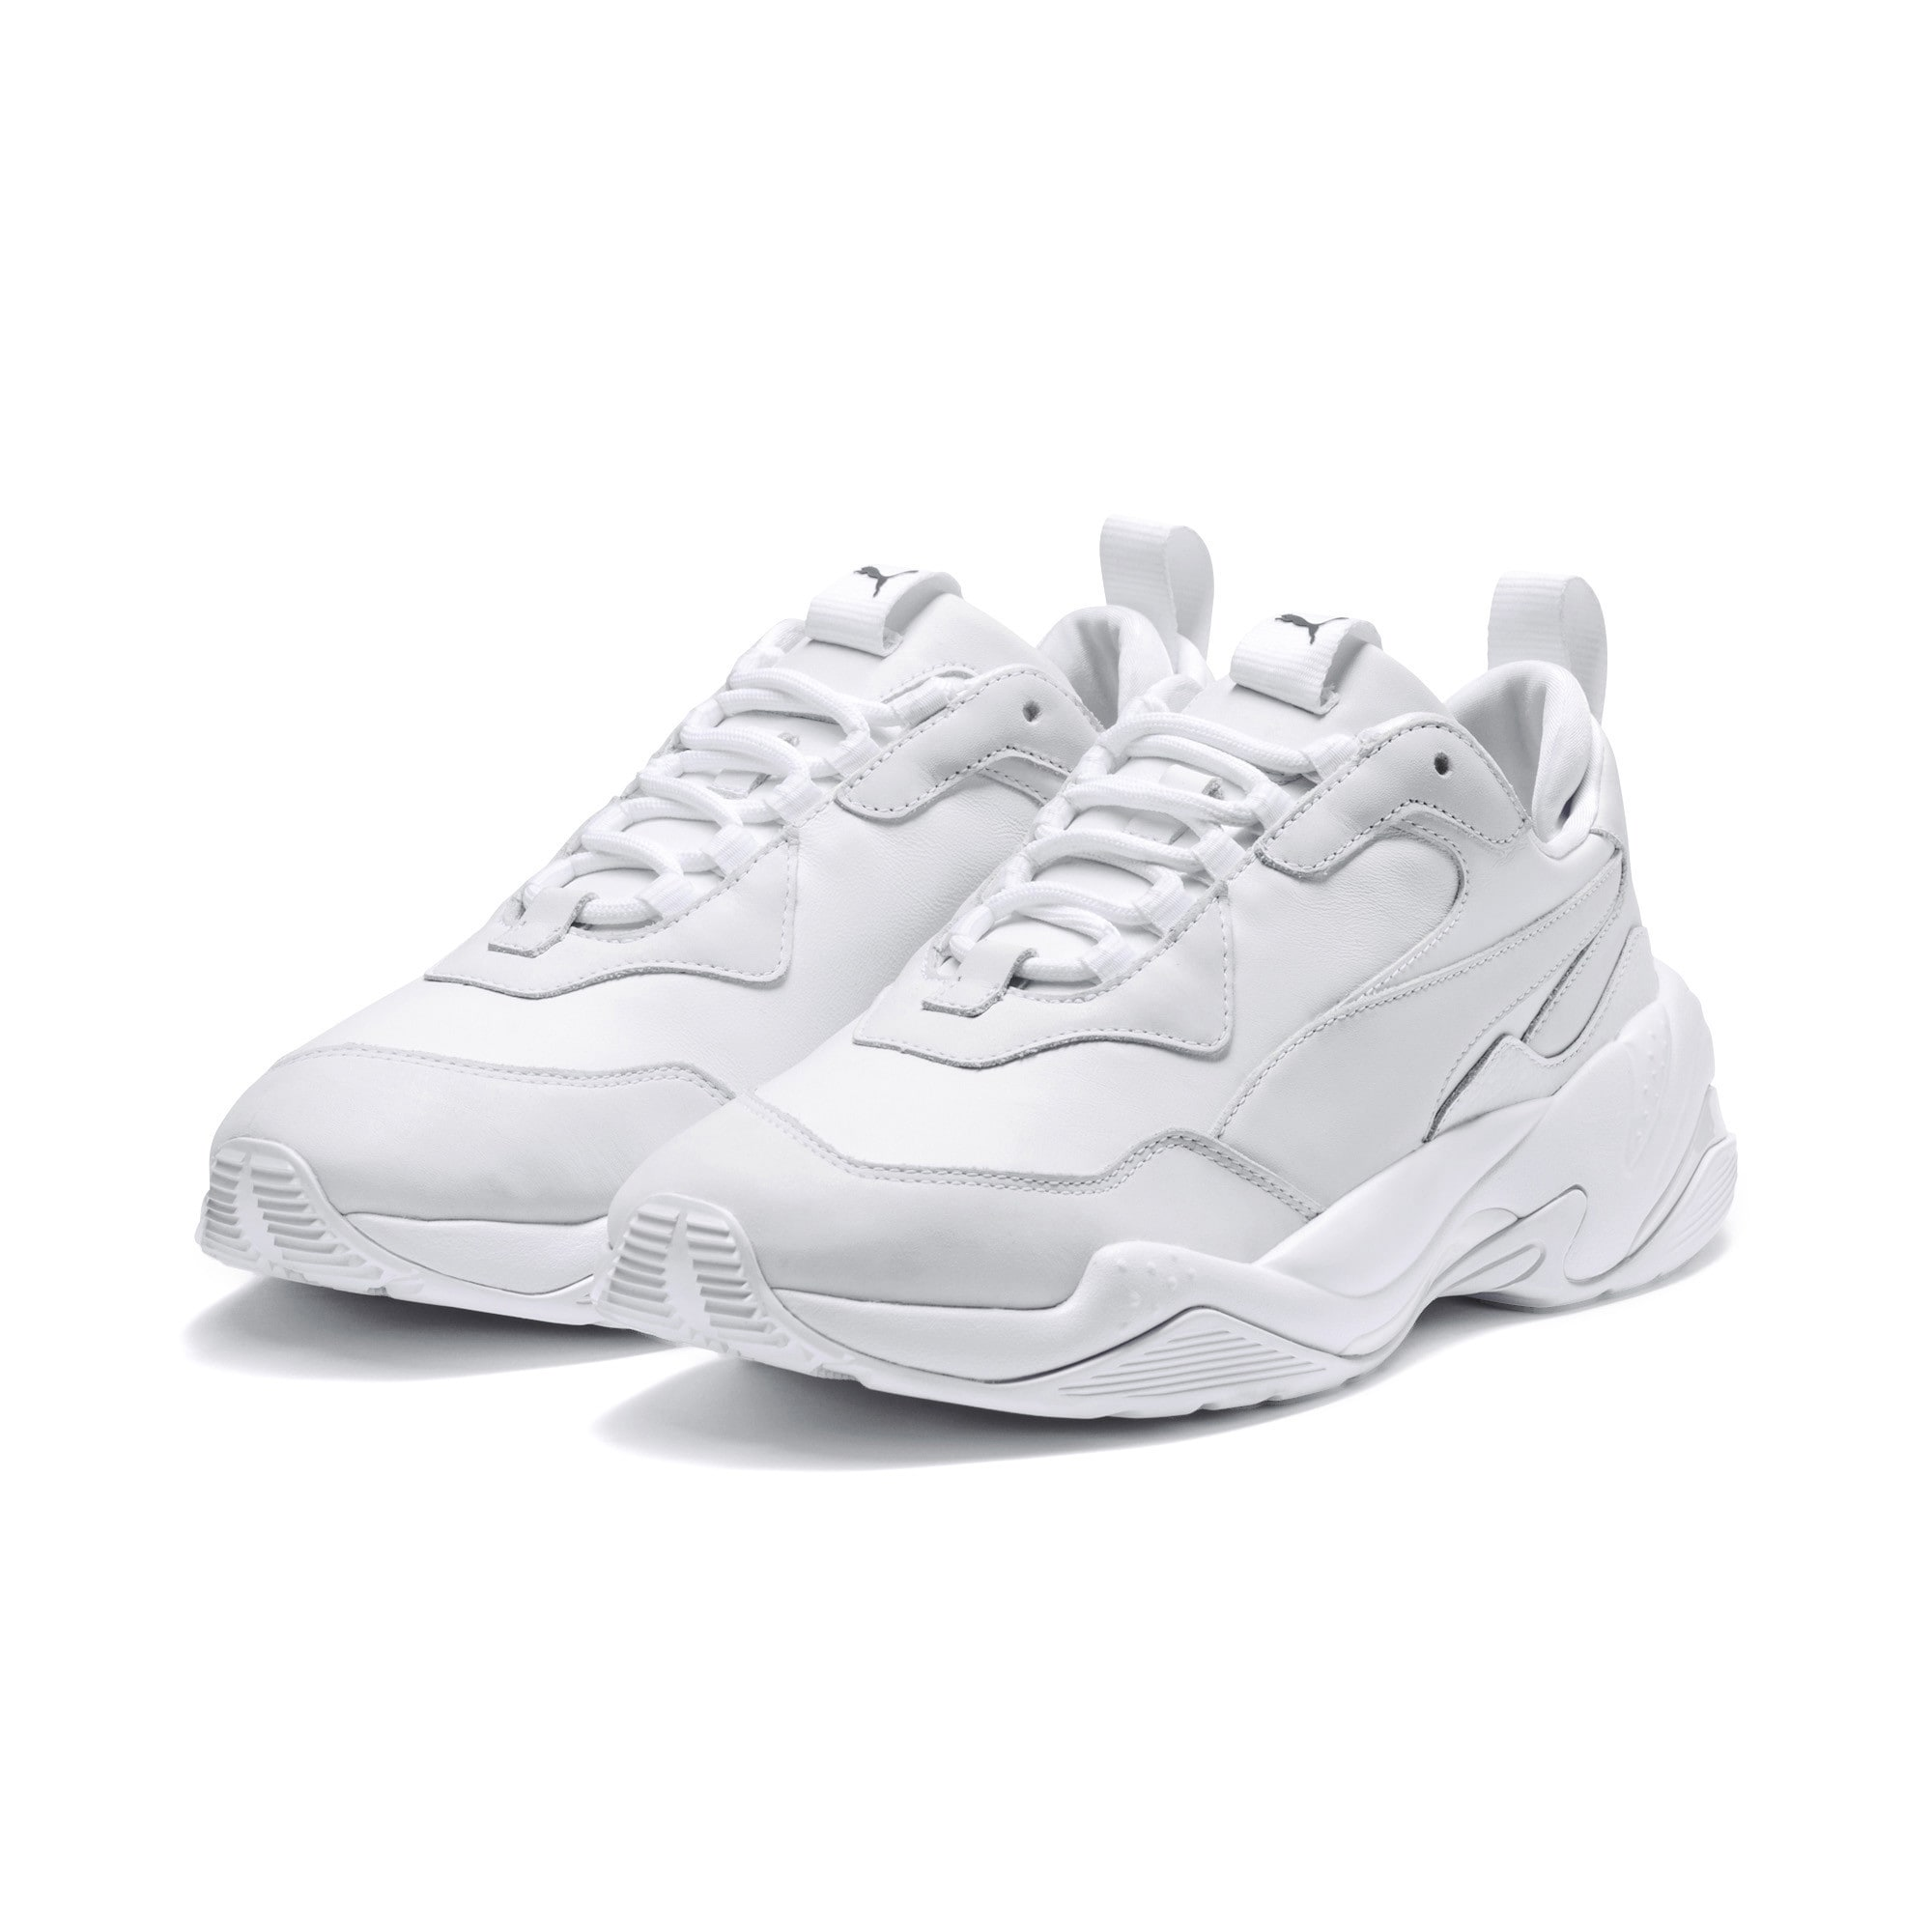 PUMA, Heren Sneakers laag 'Thunder', wit